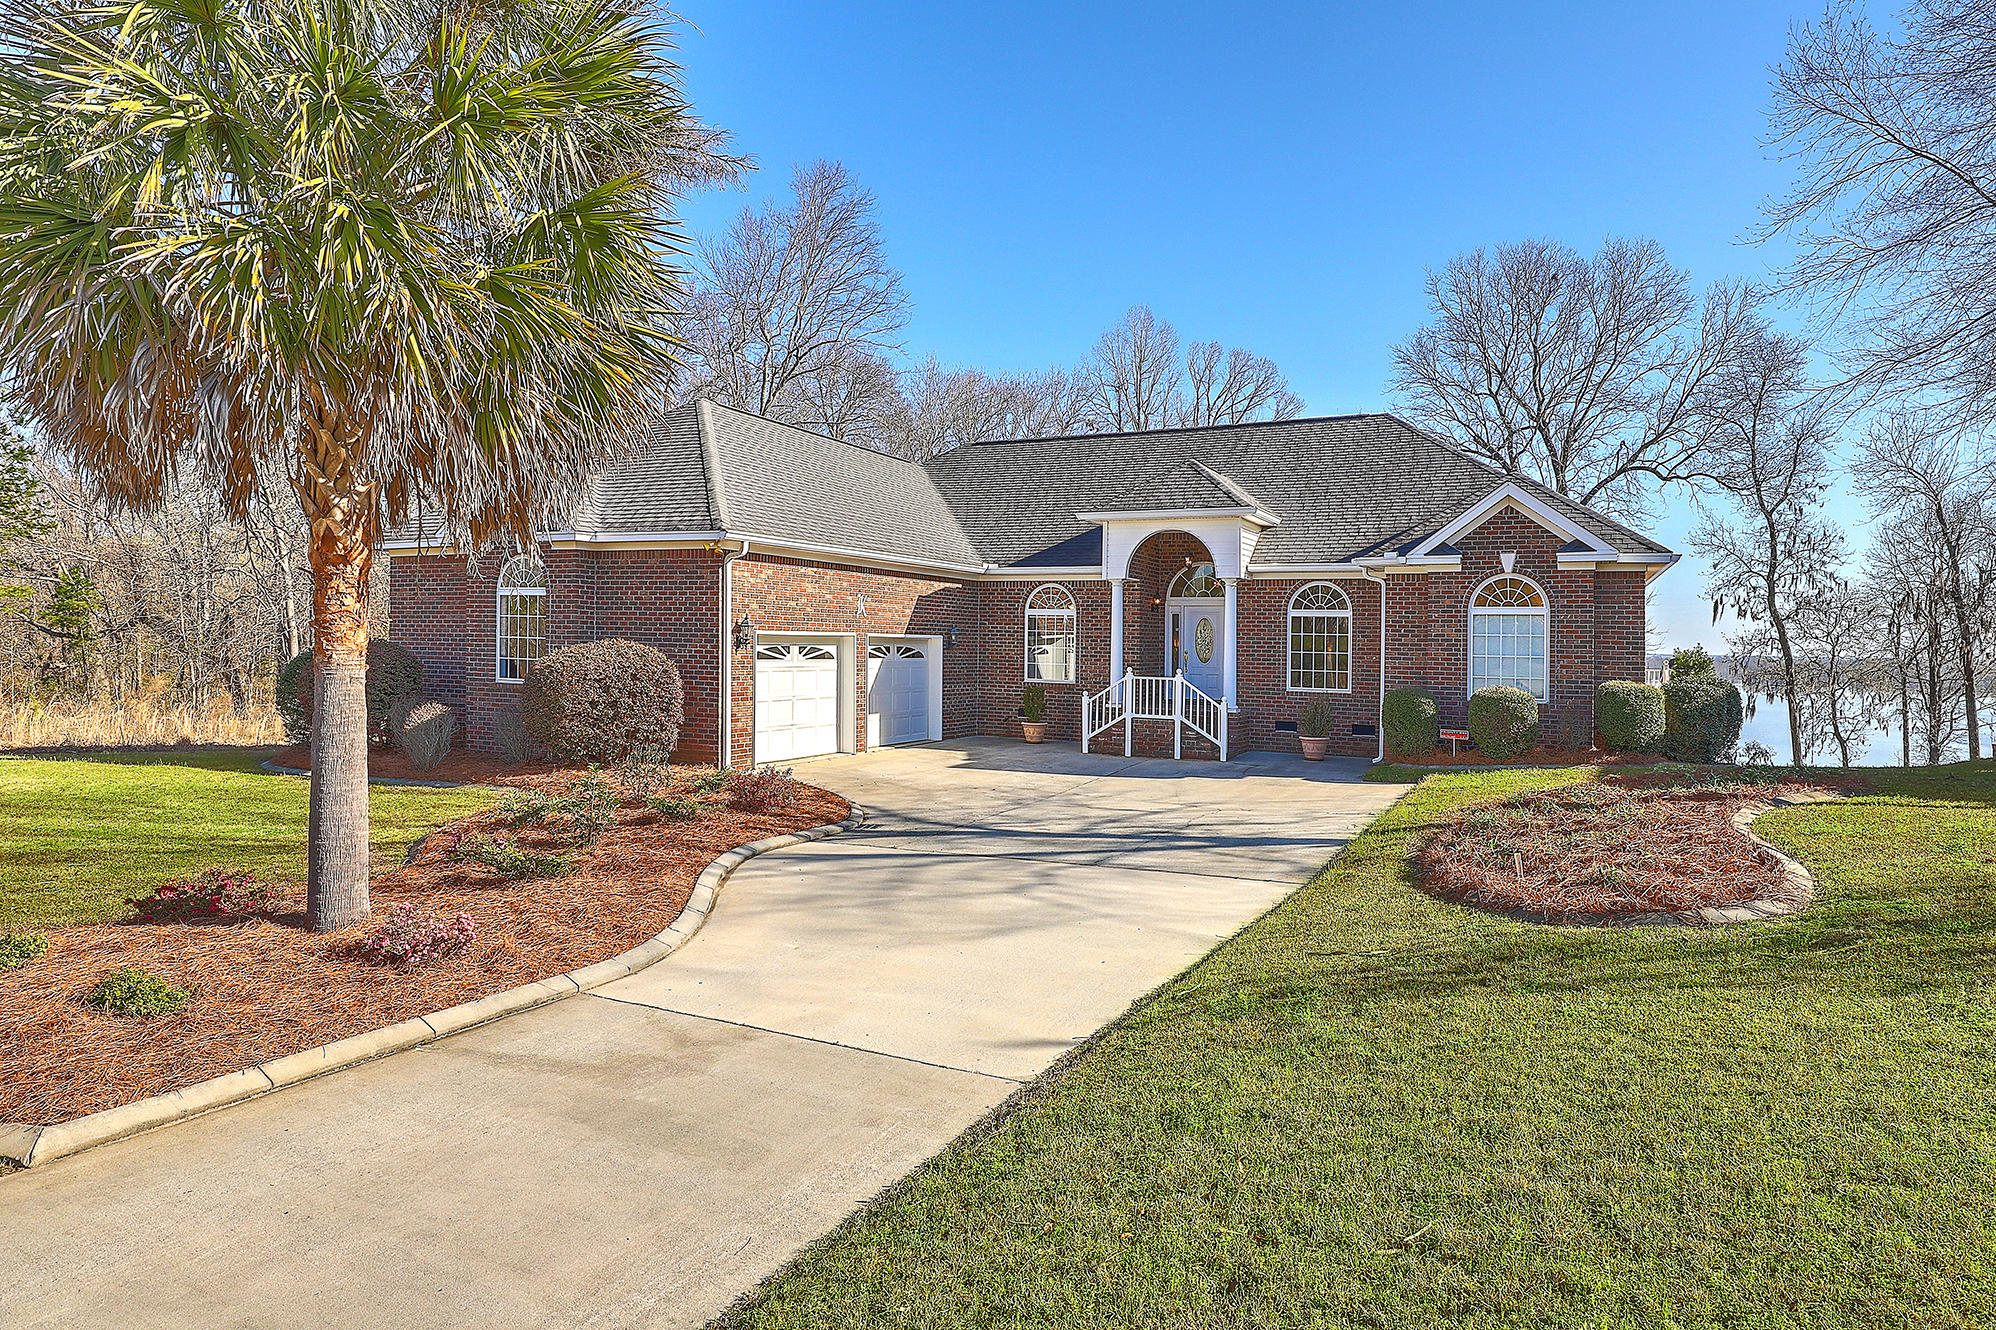 9 Hazzard Court Elloree, SC 29047